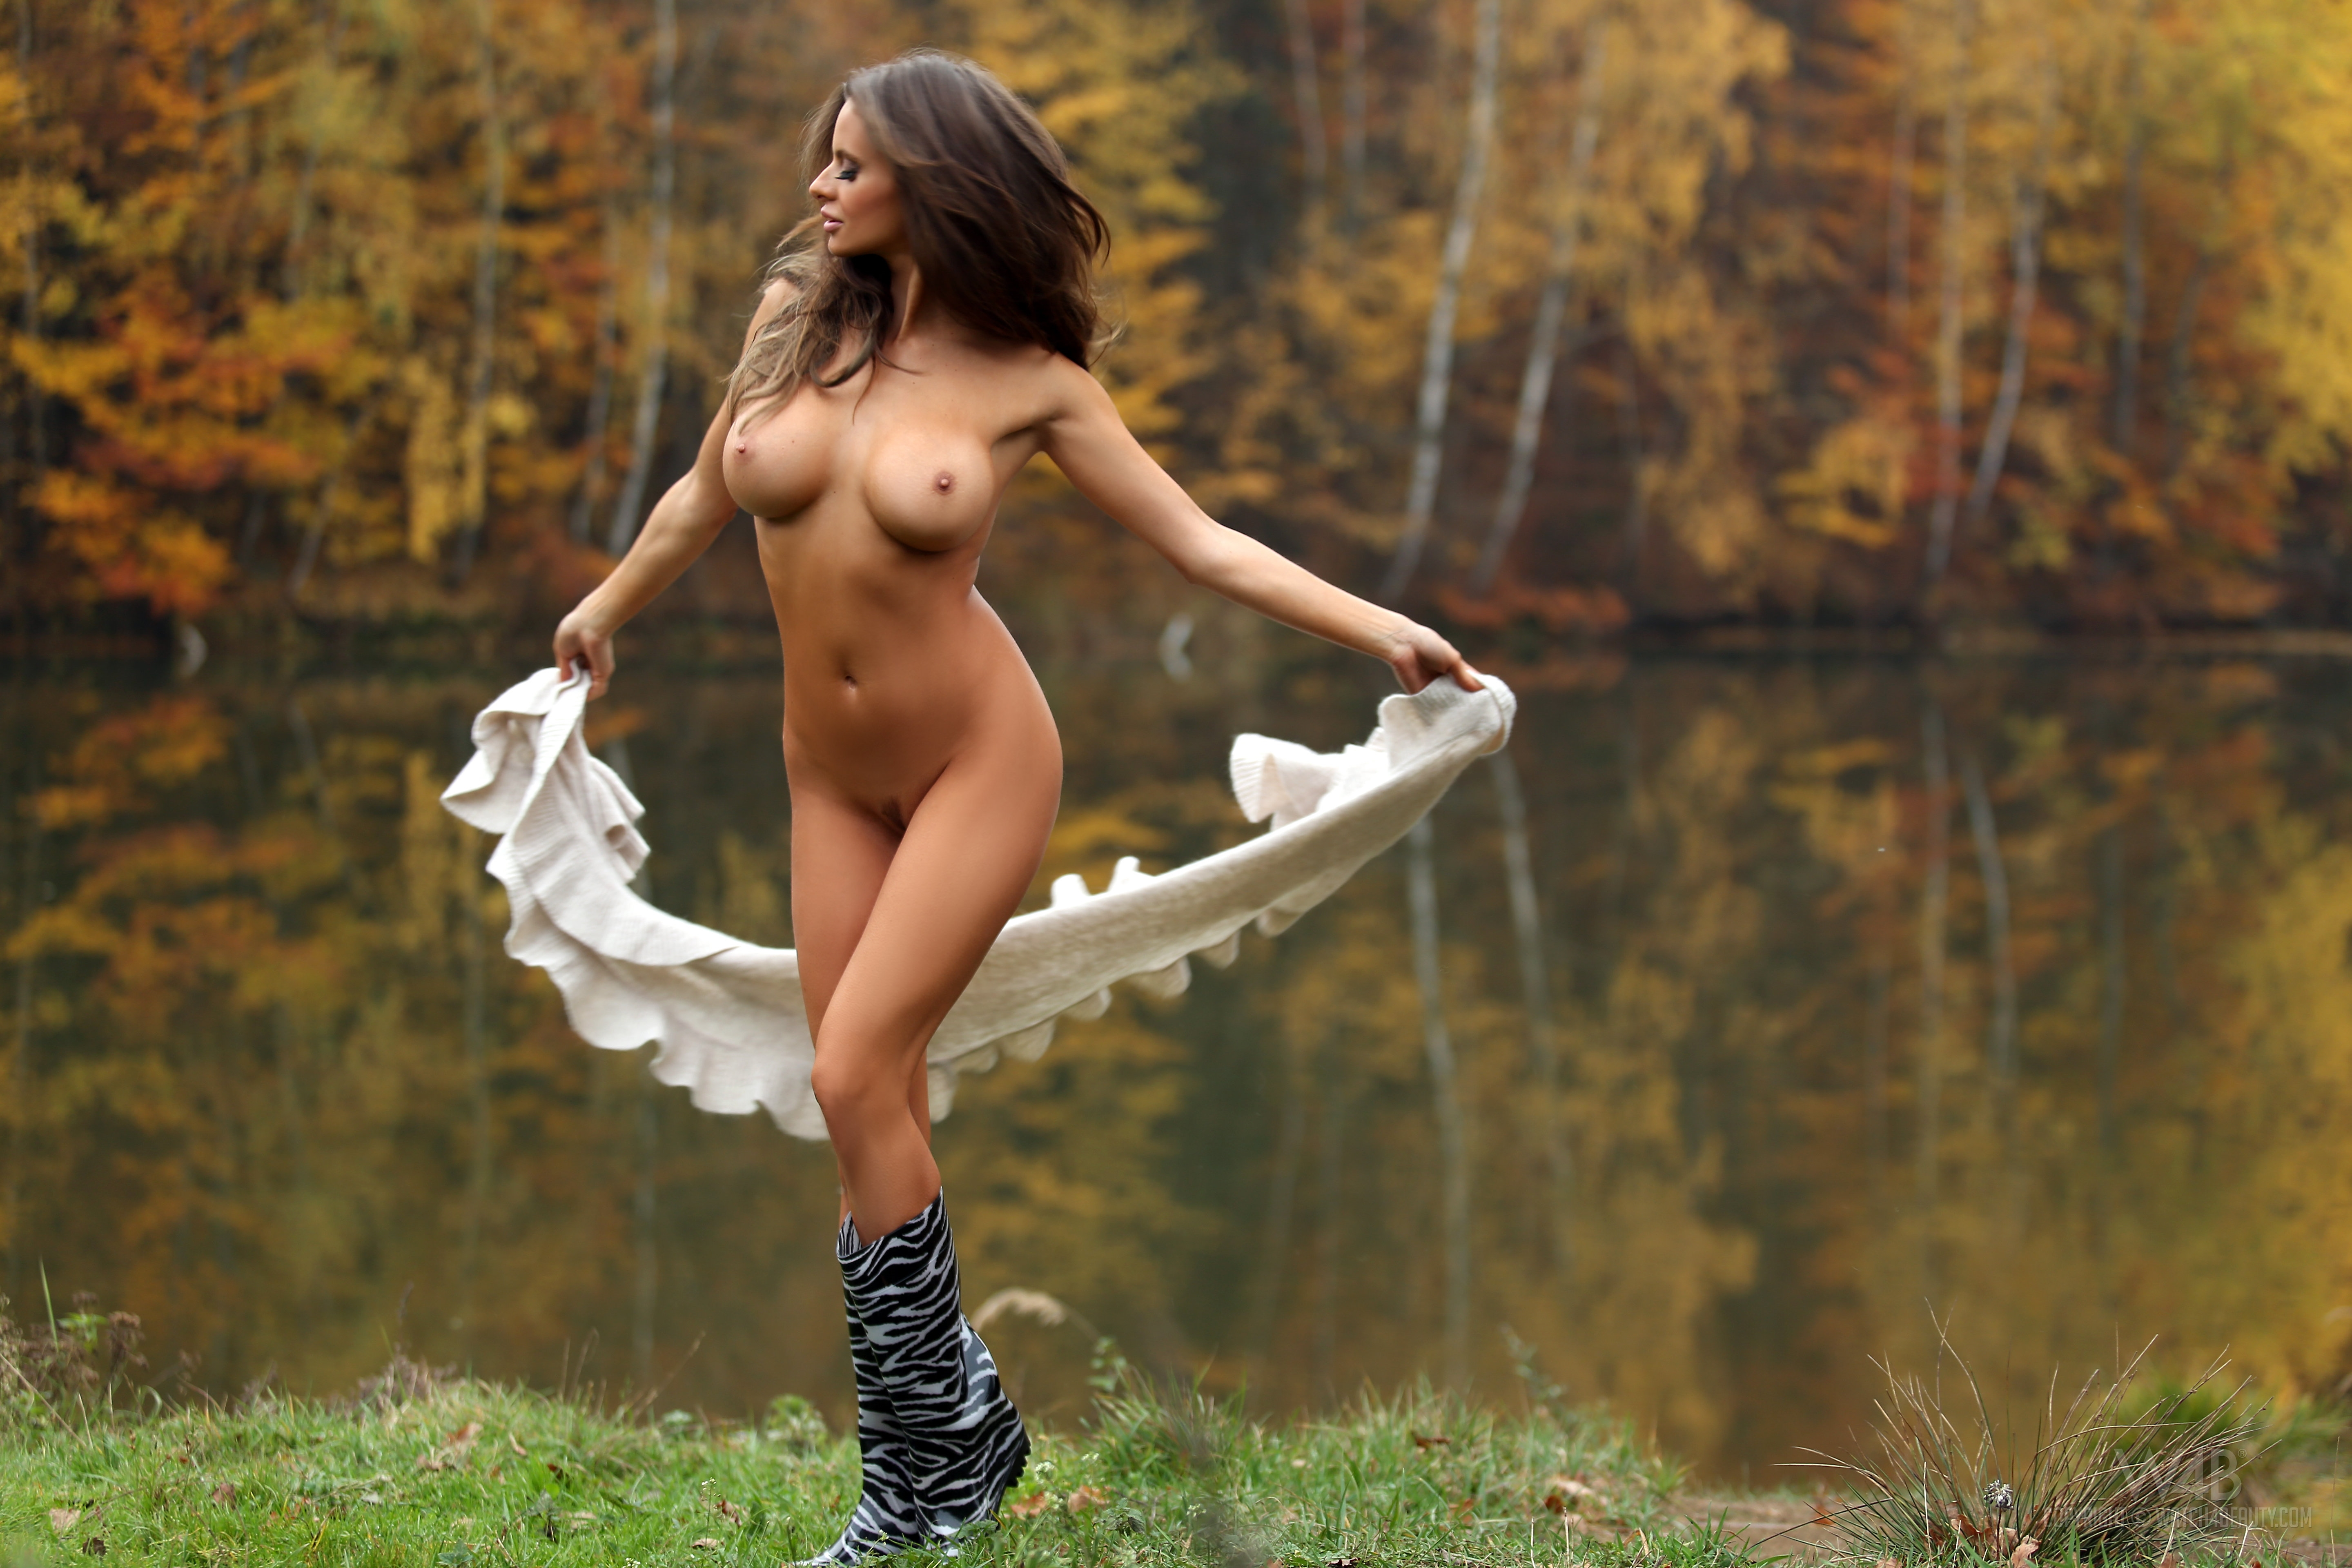 suomi-girl-nude-fun-cum-girl